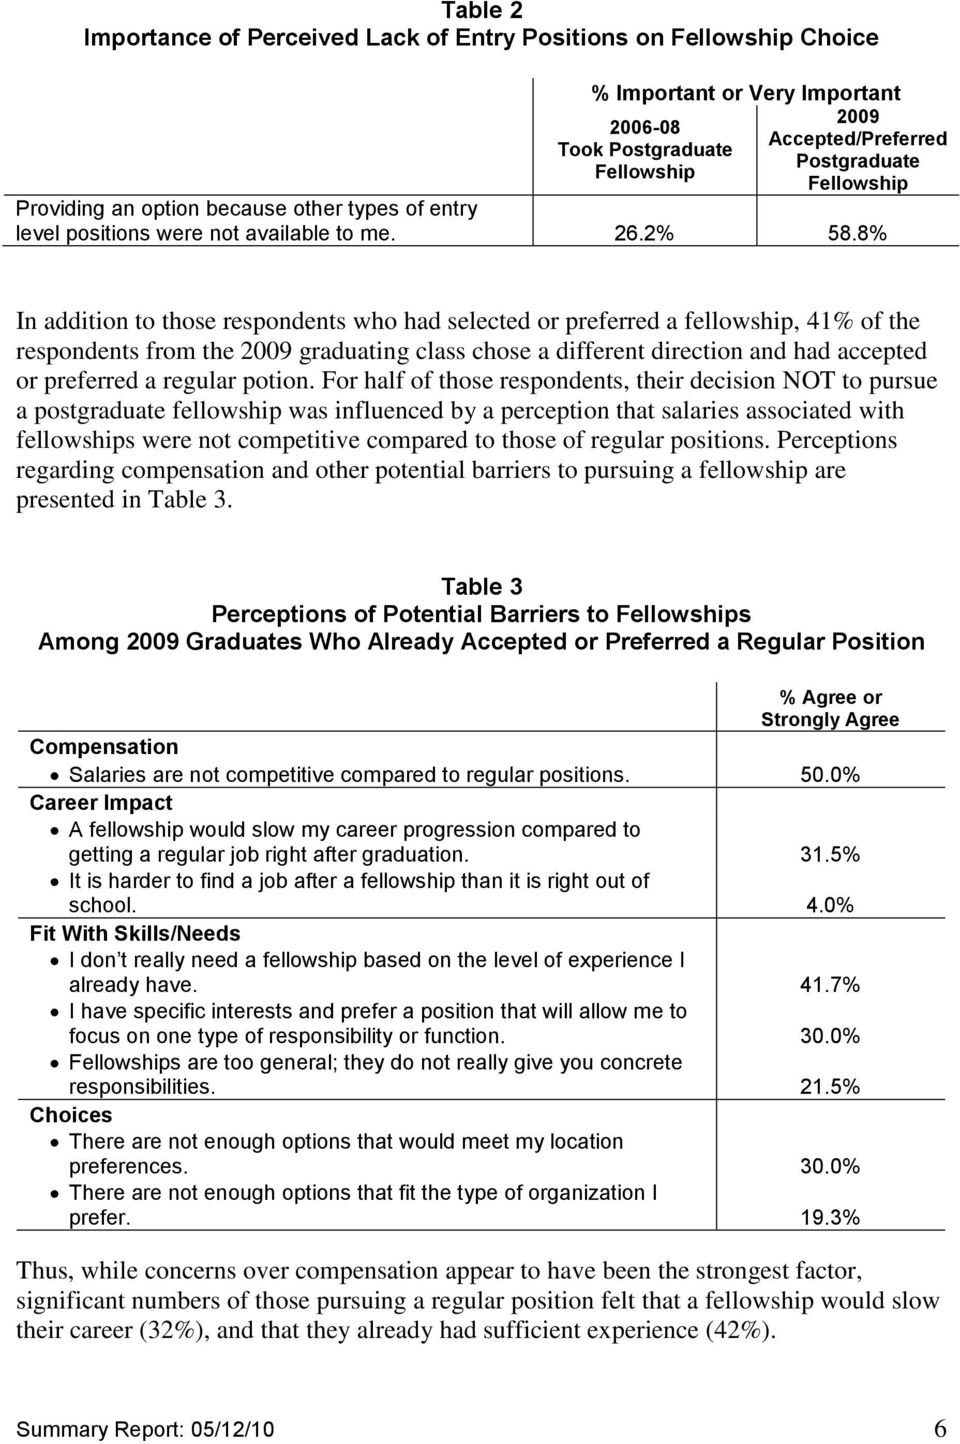 8% In addition to those respondents who had selected or preferred a fellowship, 41% of the respondents from the 2009 graduating class chose a different direction and had accepted or preferred a